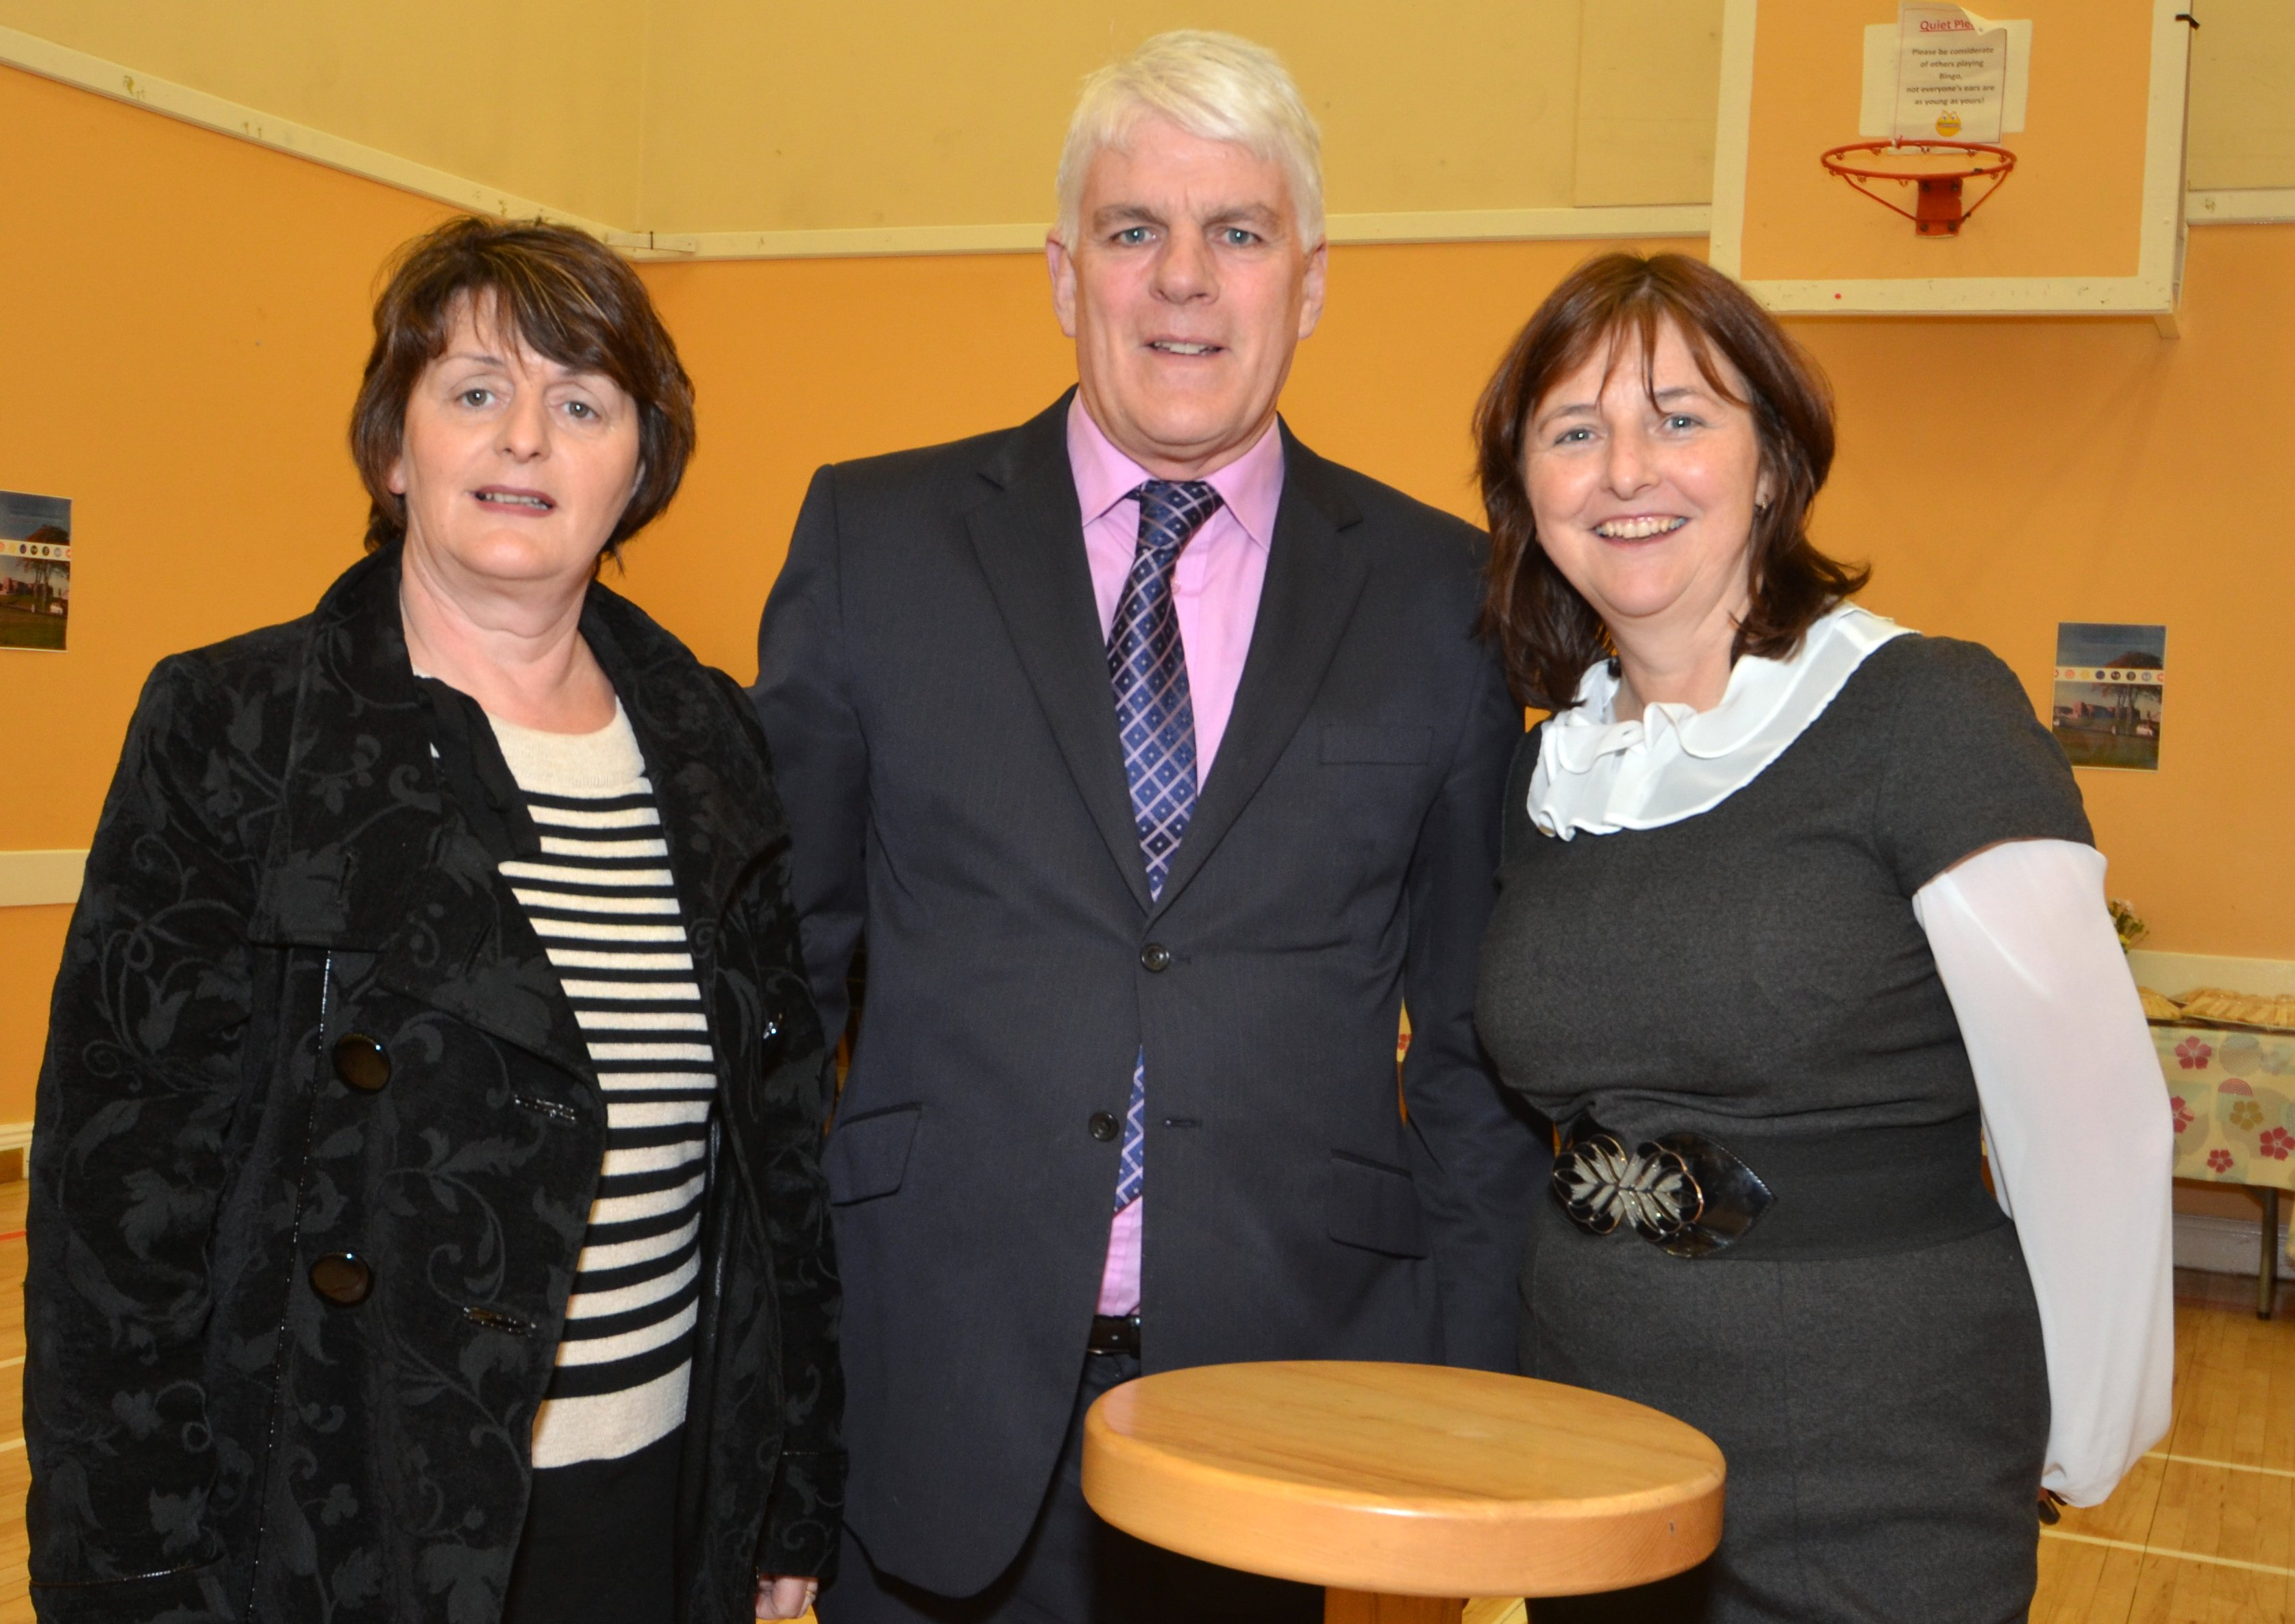 ( from right to left) Anne Marie O'Connor, Coordinator of the Community Companions, with Gerard Kerrins, Volunteer and Breda Duggan, Community Companion